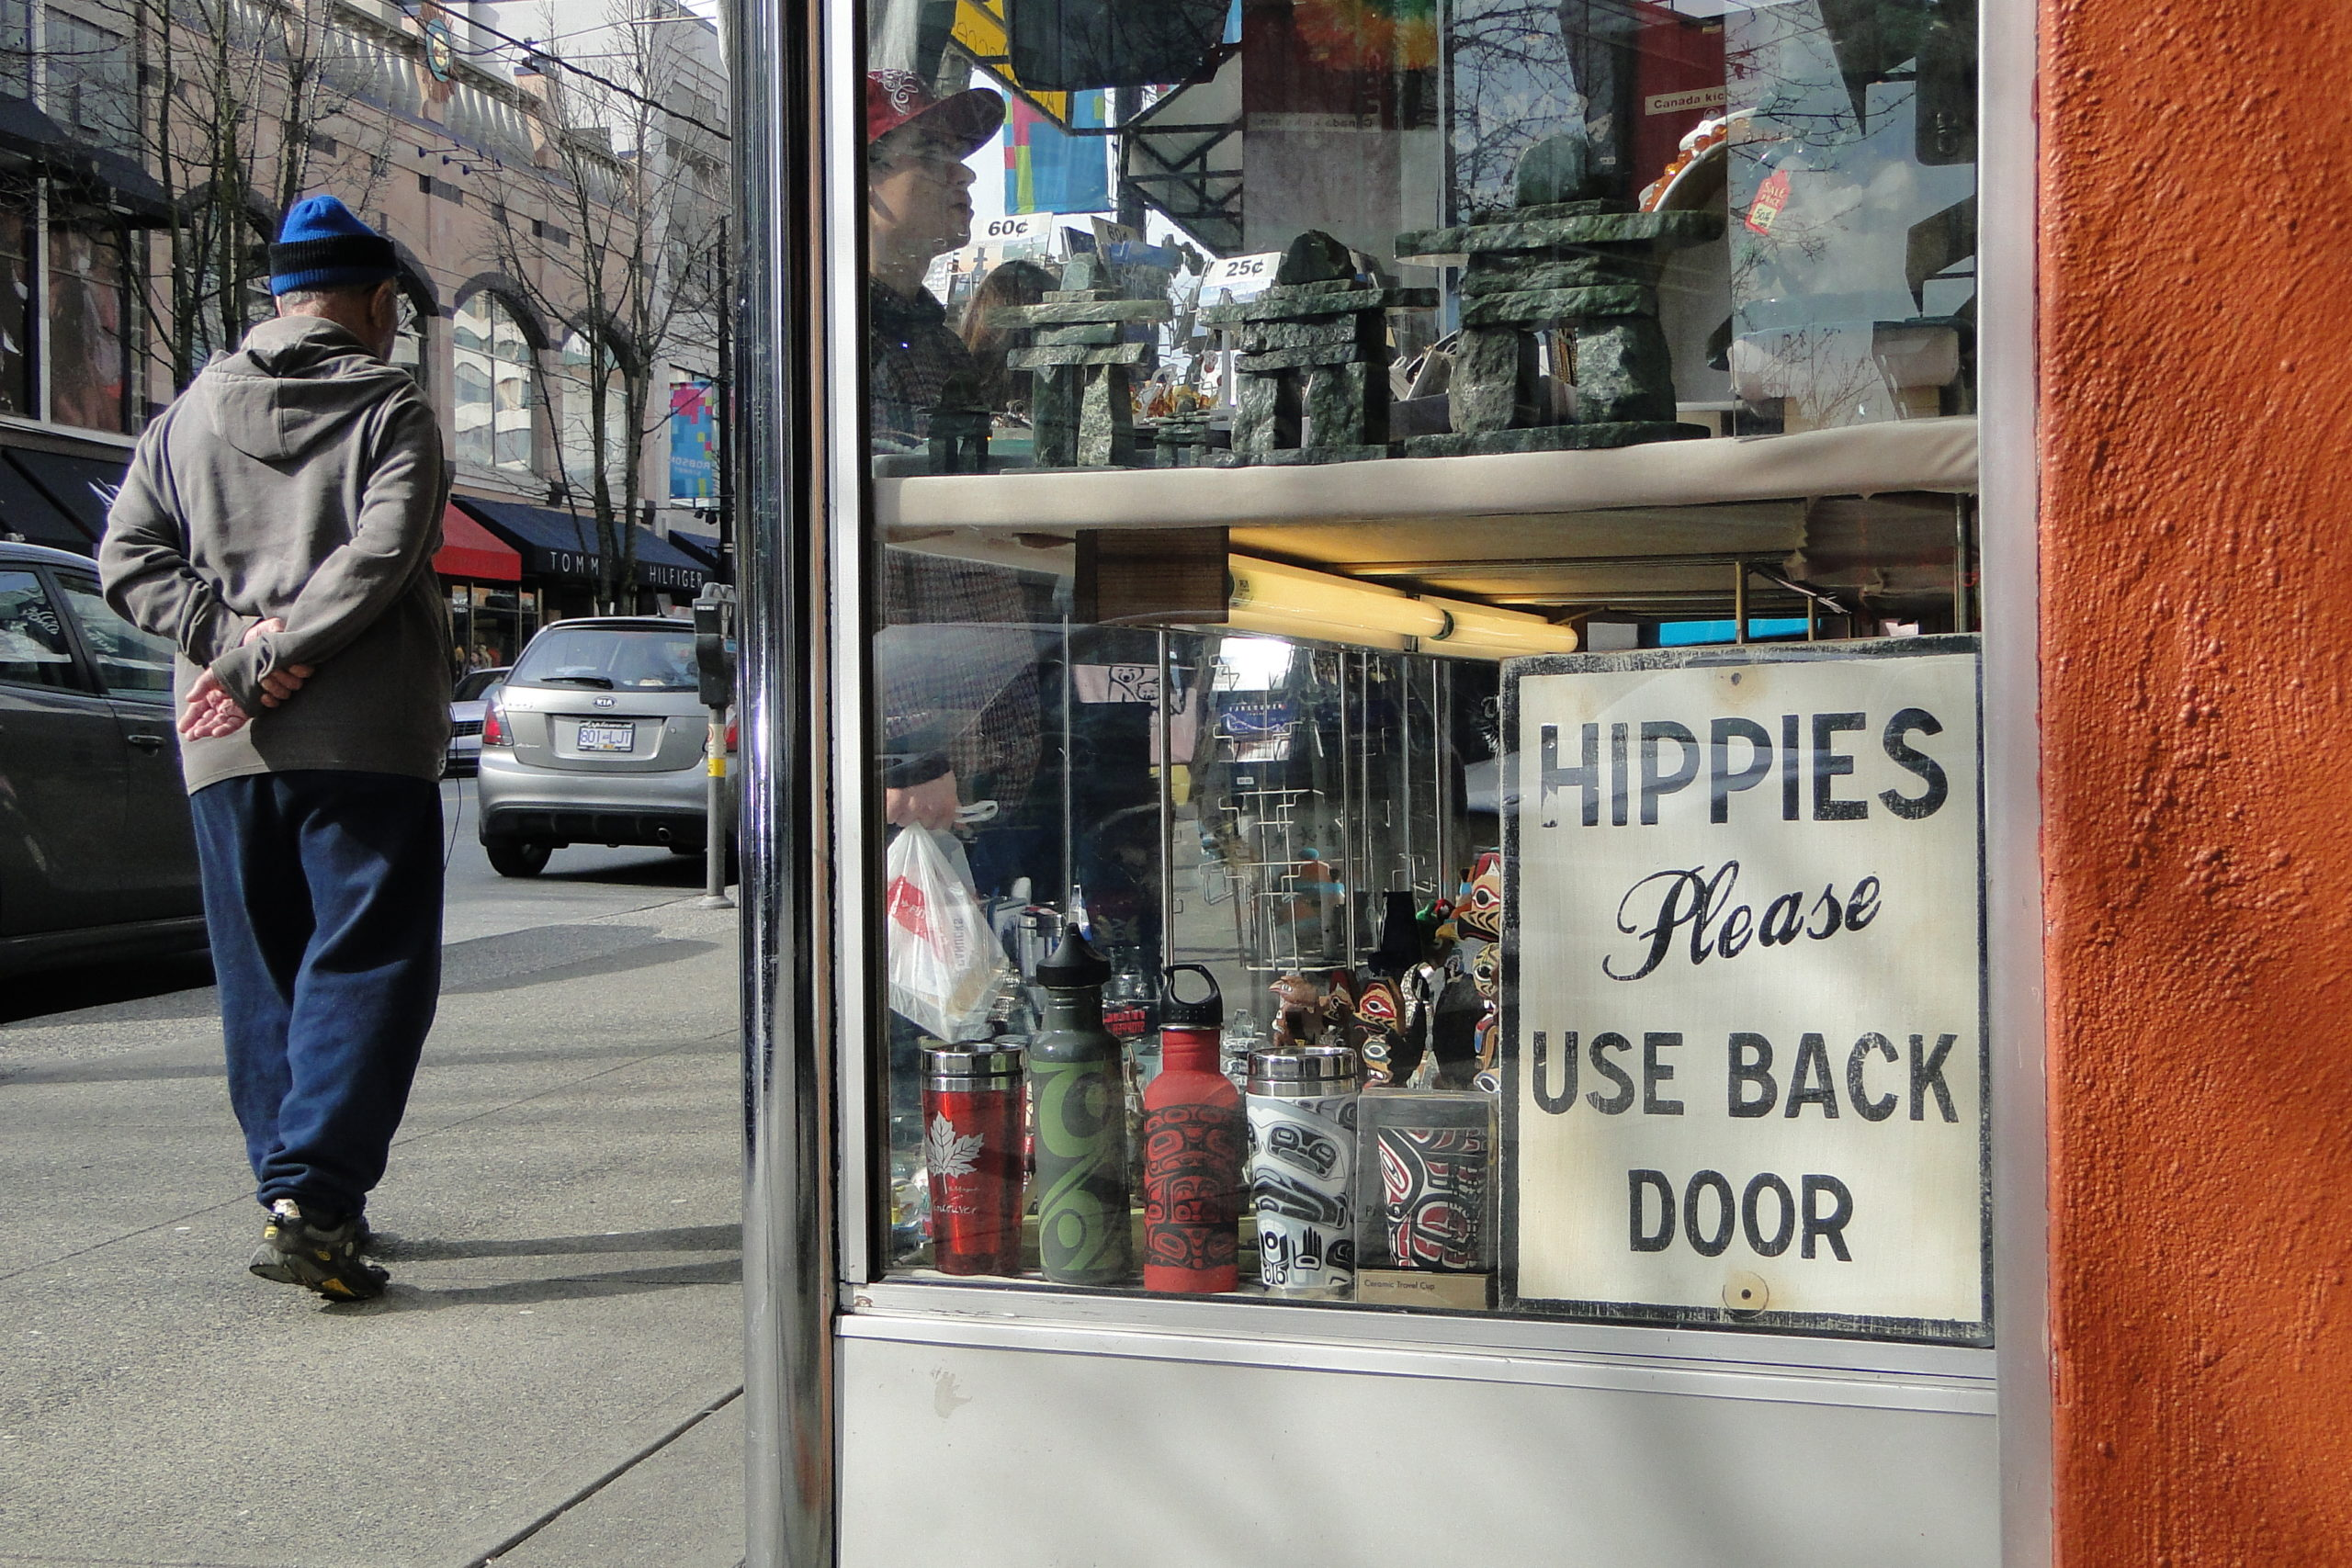 """A sign in a storefront says """"Hippies please use back door."""""""